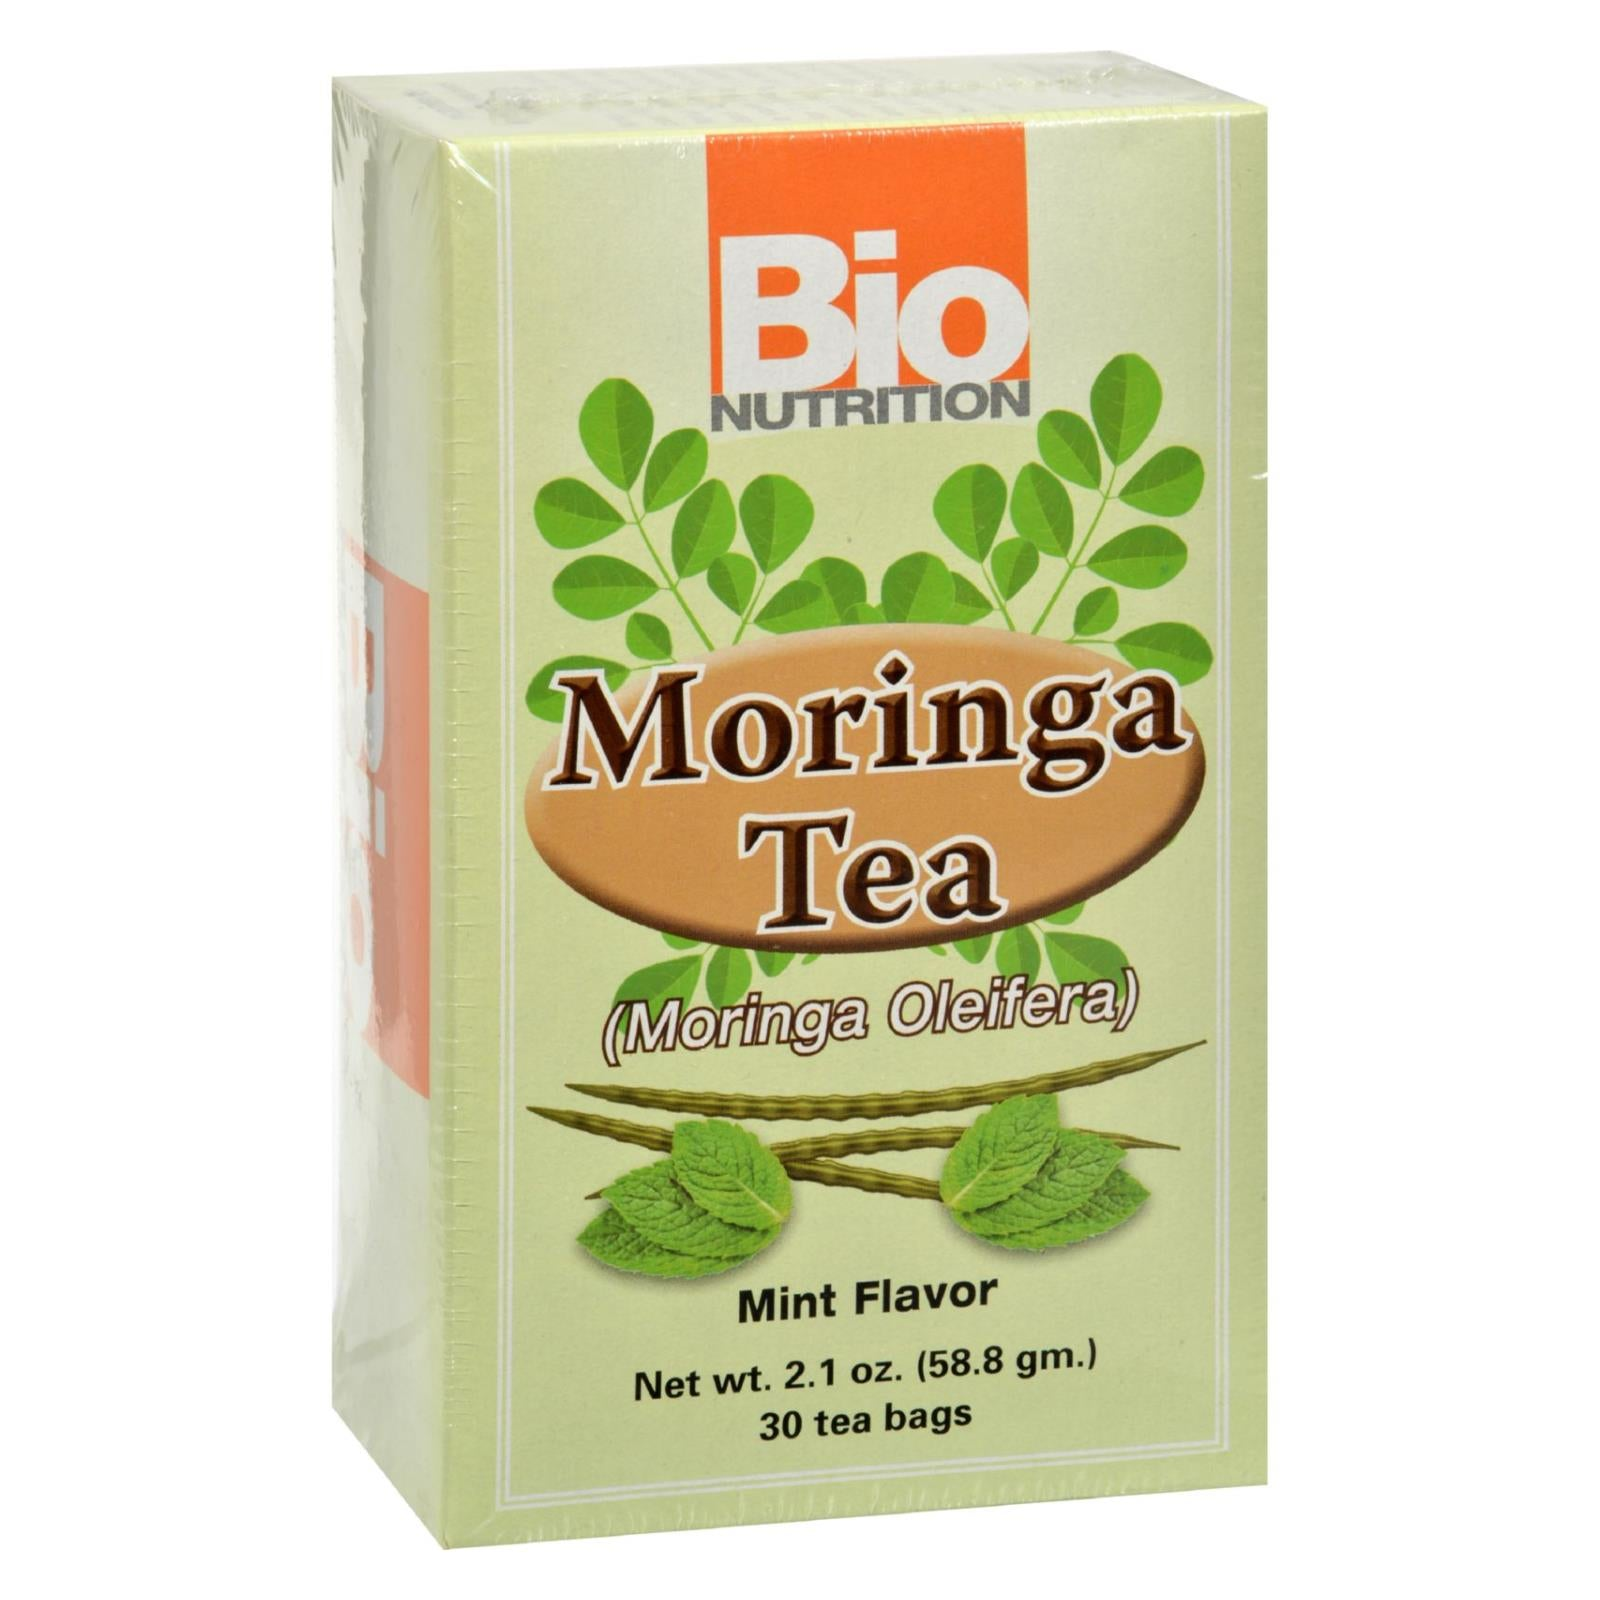 Buy Bio Nutrition Tea - Moringa Mint - 30 Bags - Wellness Tea from Veroeco.com